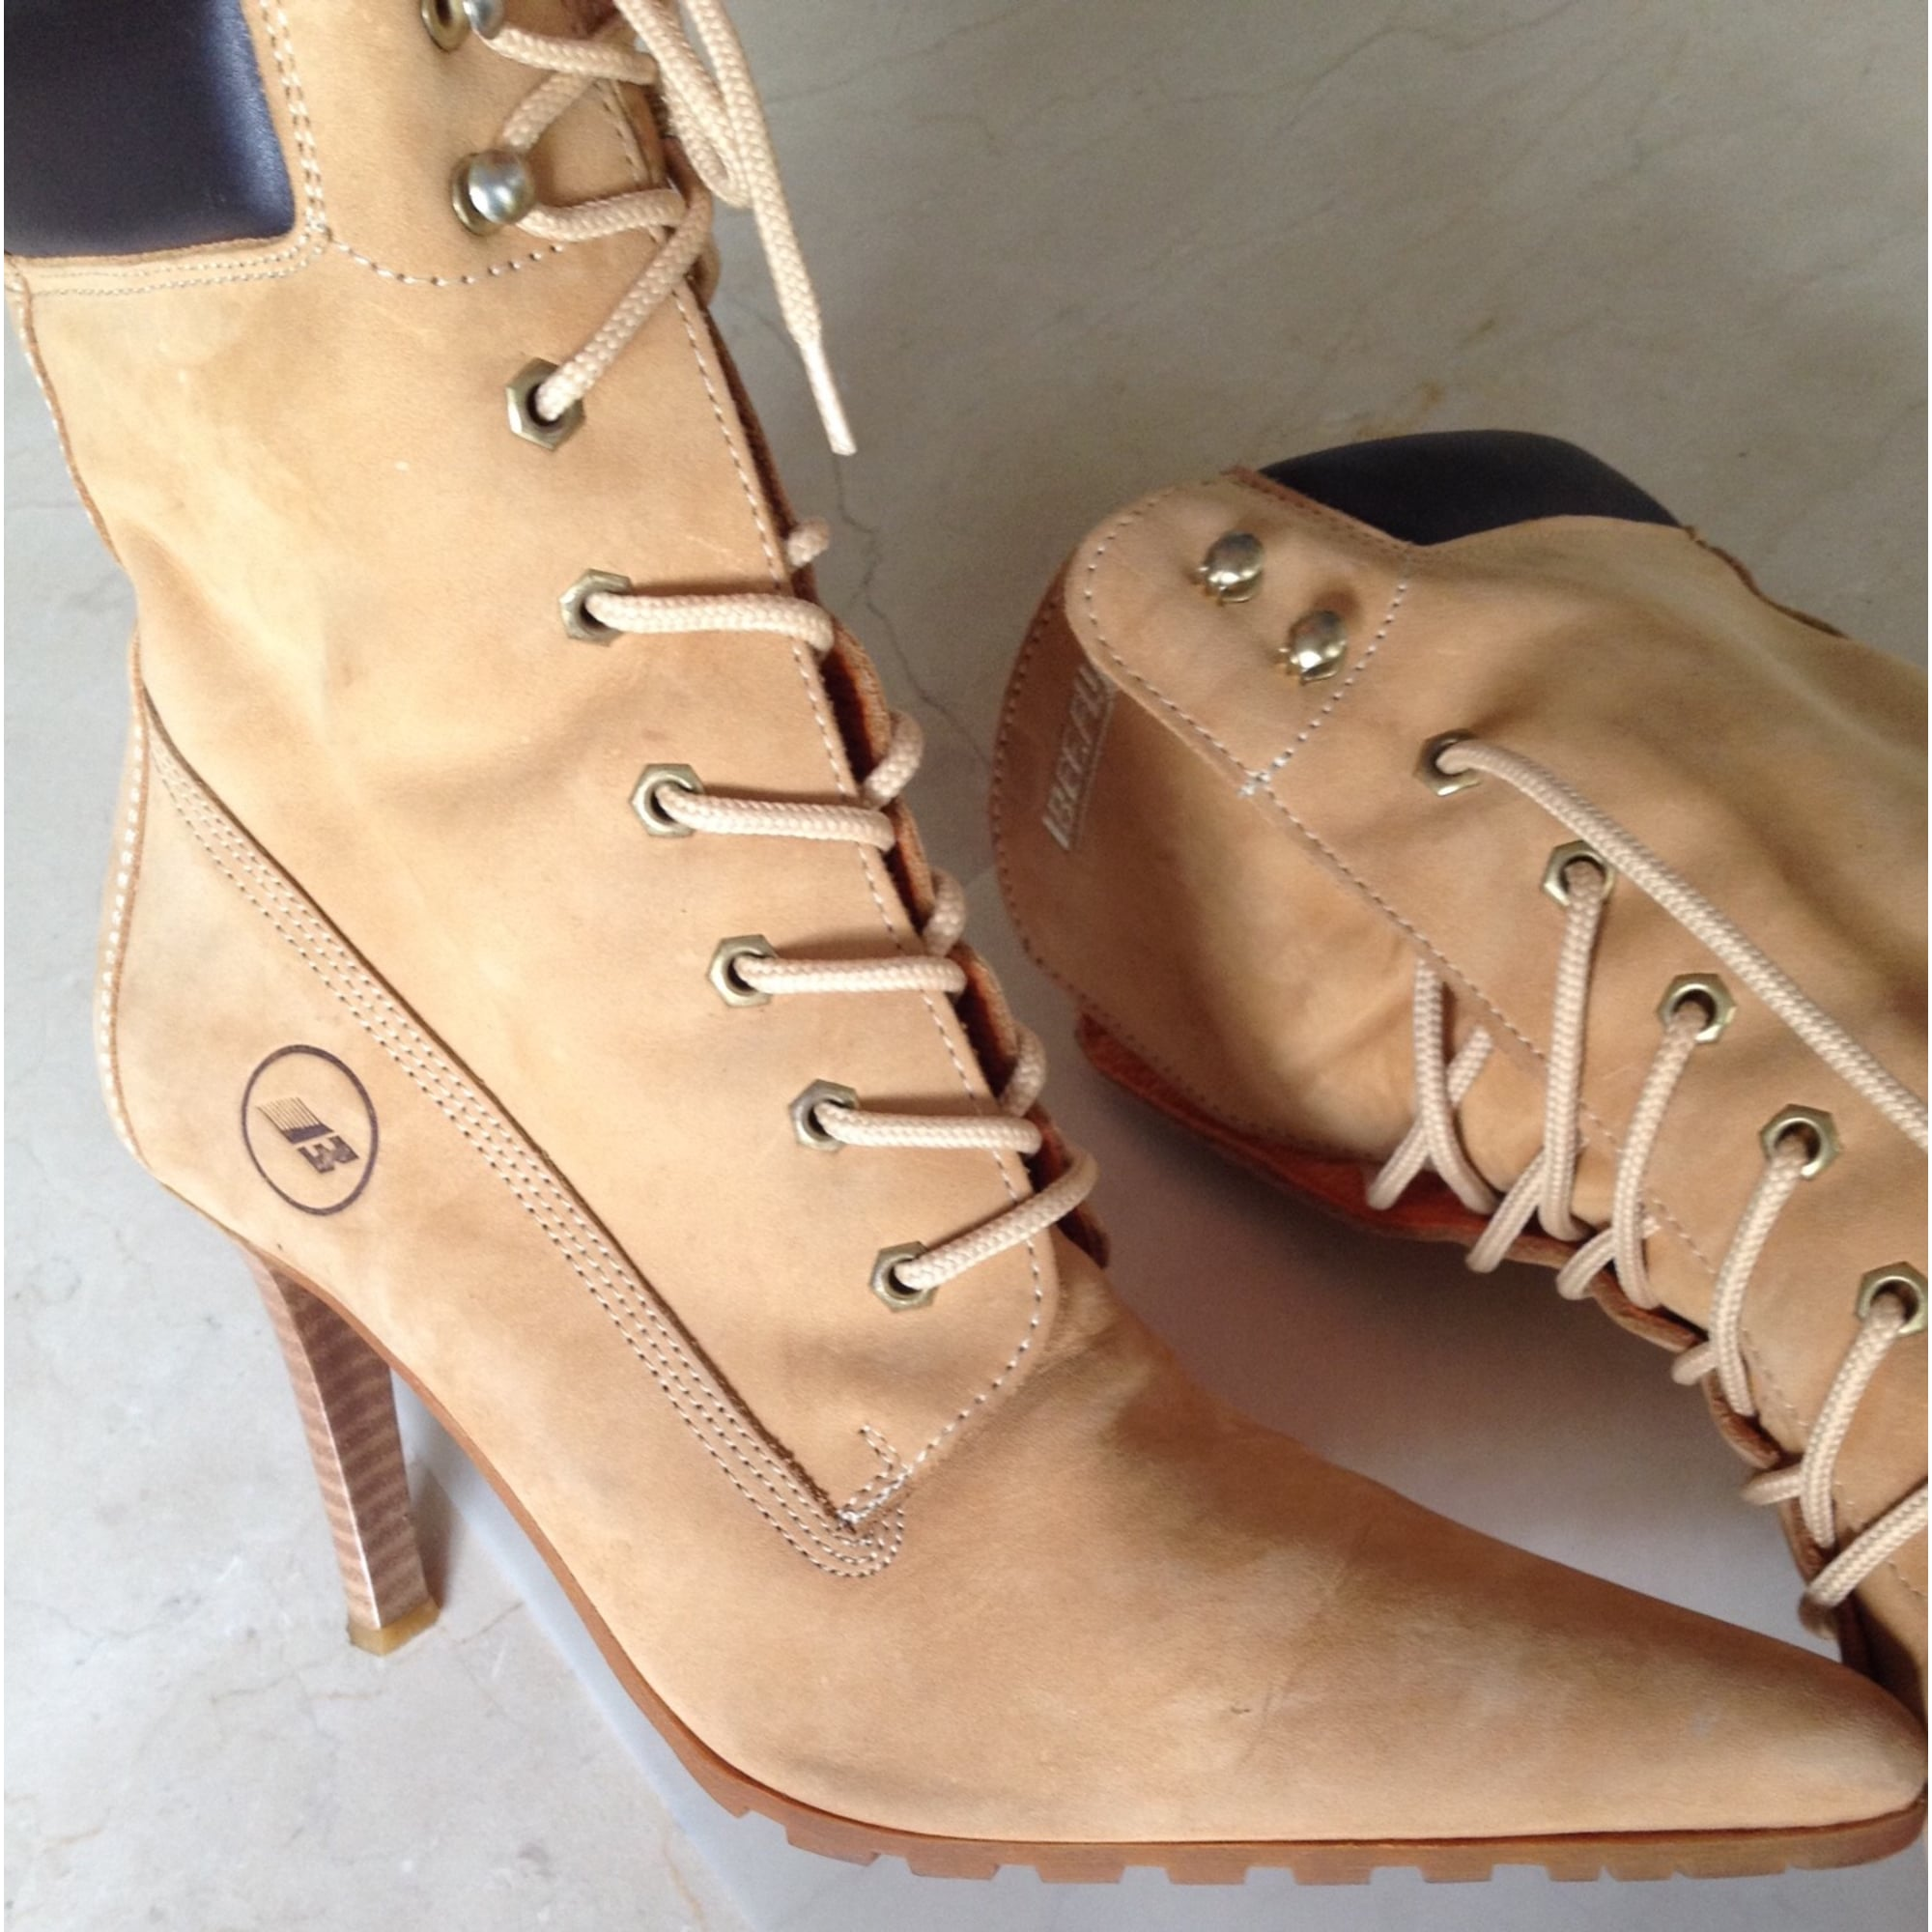 Bottines & low boots à talons BEE FLY Beige, camel